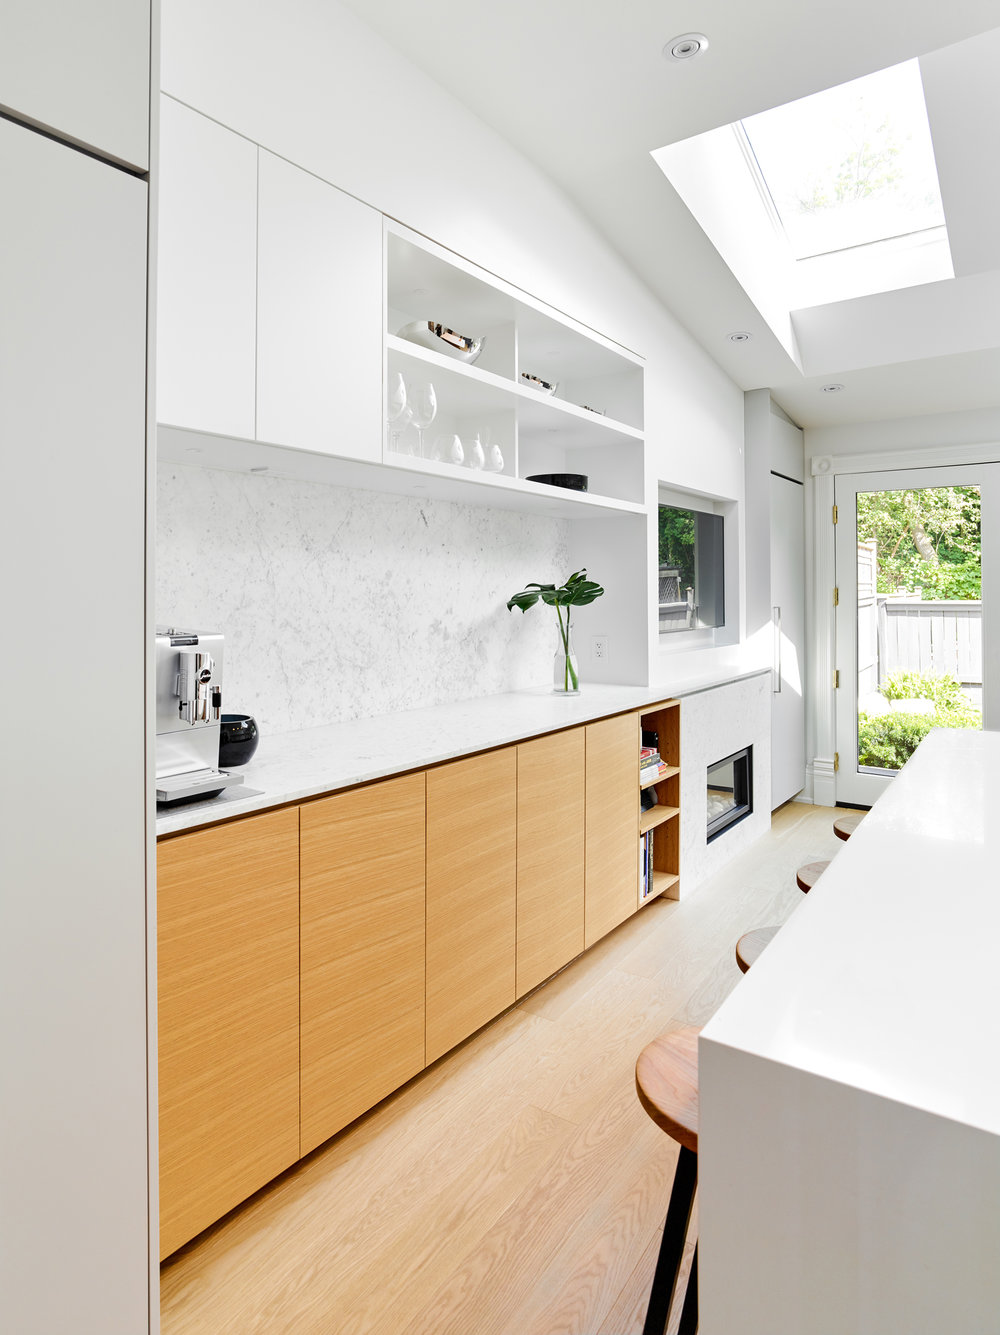 Relaxing social kitchen in white with polished finishes and connectivity with the outdoors